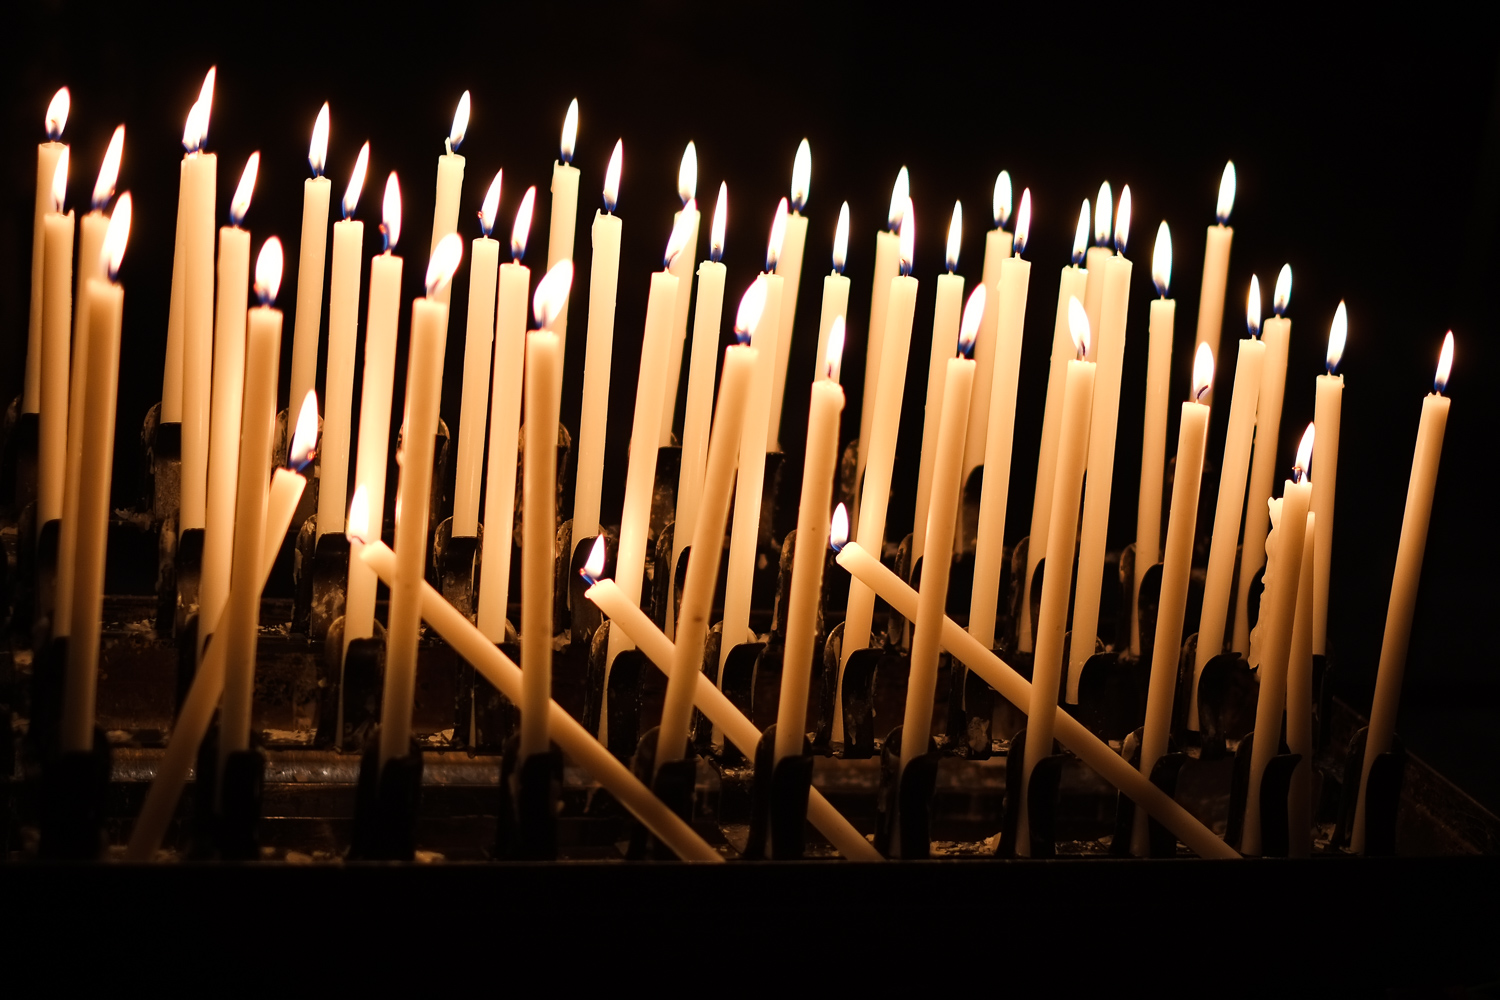 Candles (Venice, 2012)